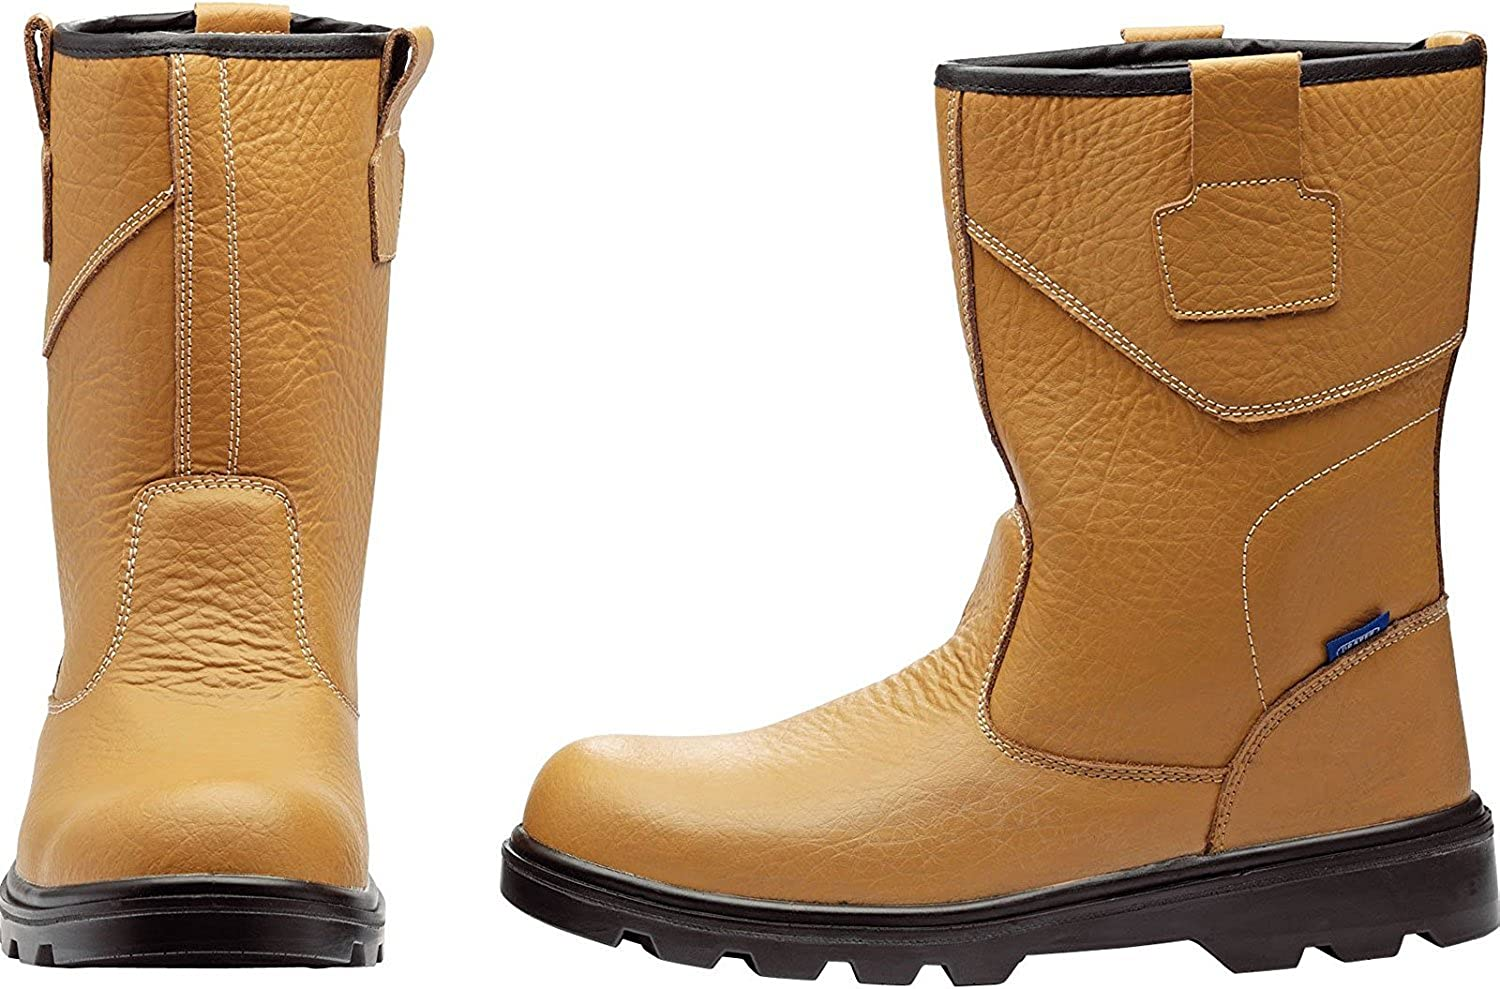 Draper 85973 Rigger Style Safety Boots, Yellow, Size 8